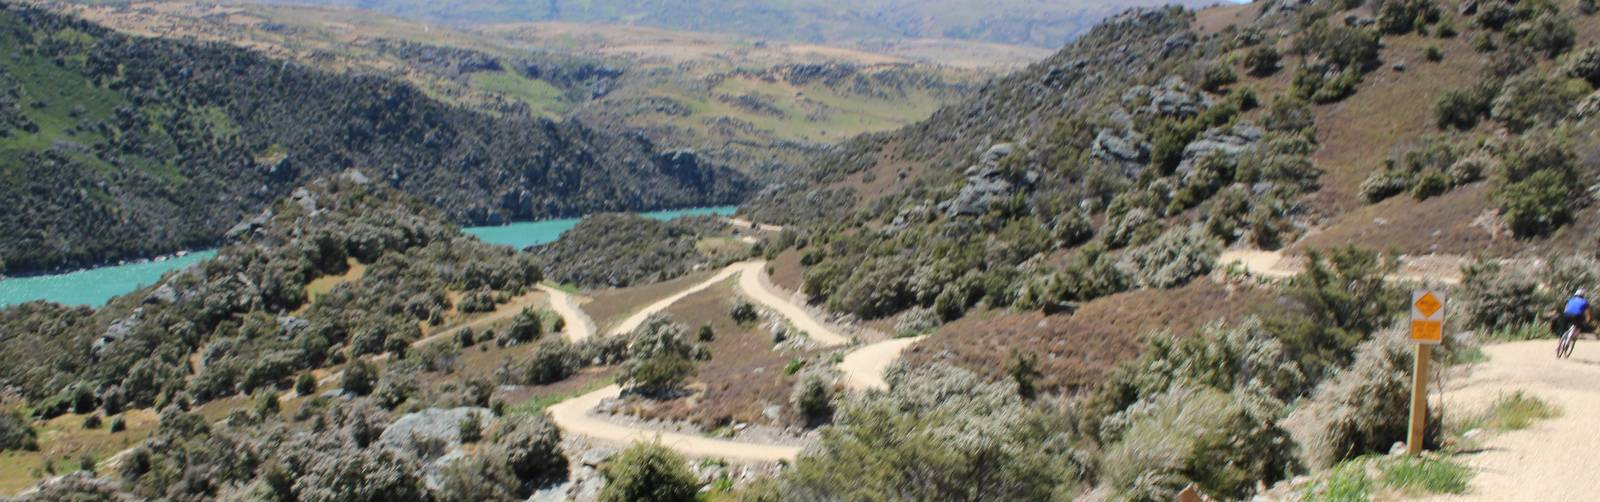 Roxburgh Gorge Switchbacks